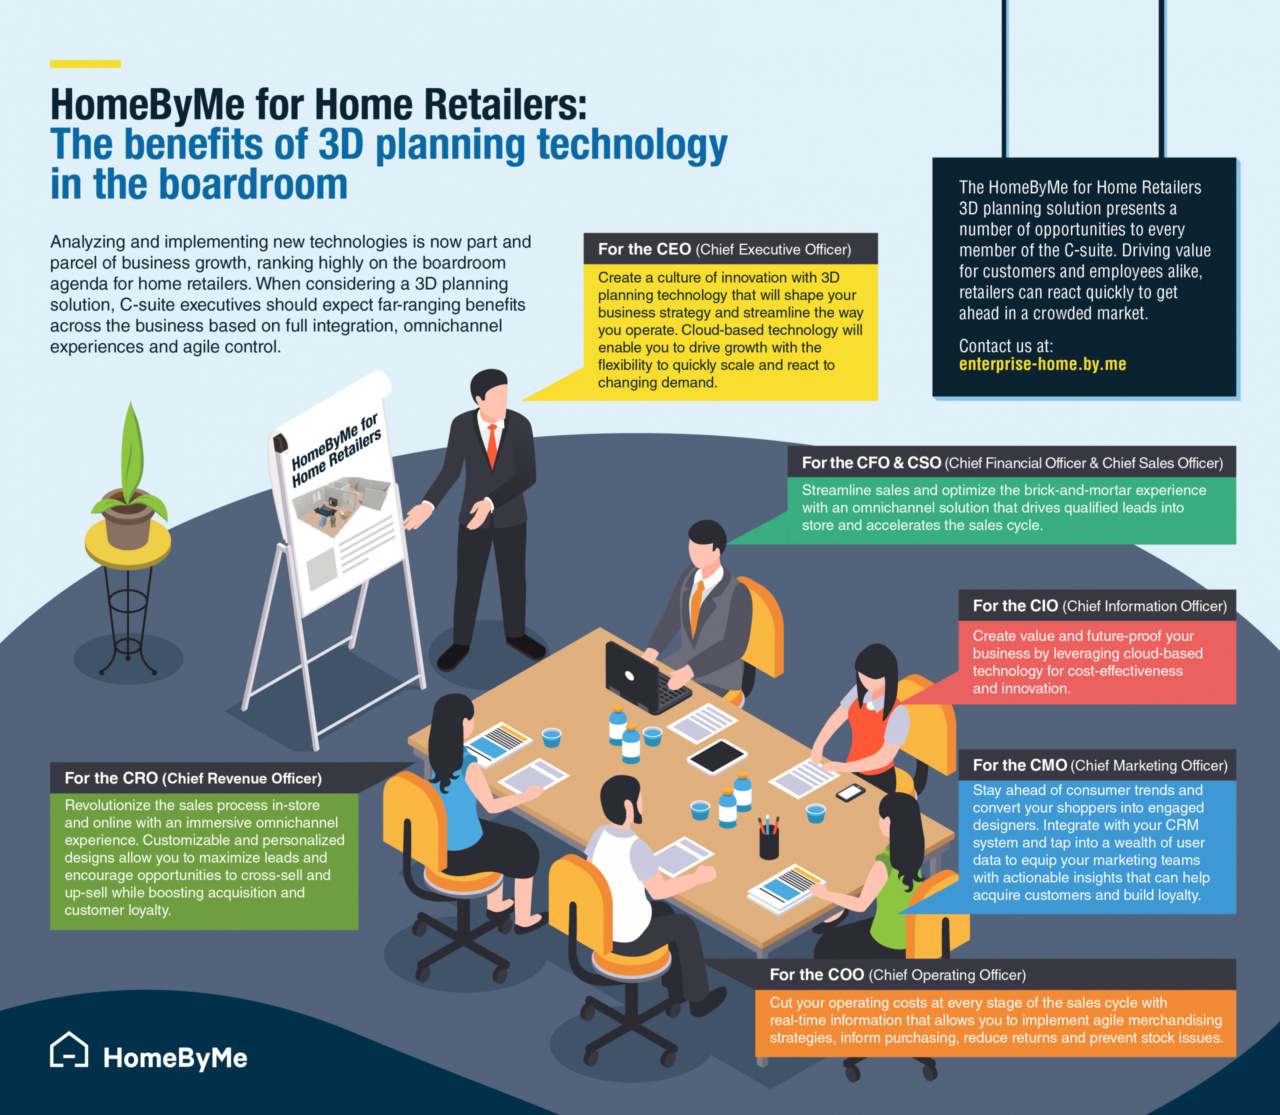 the benefits of HomeByMe for home retailers 3D planning solution